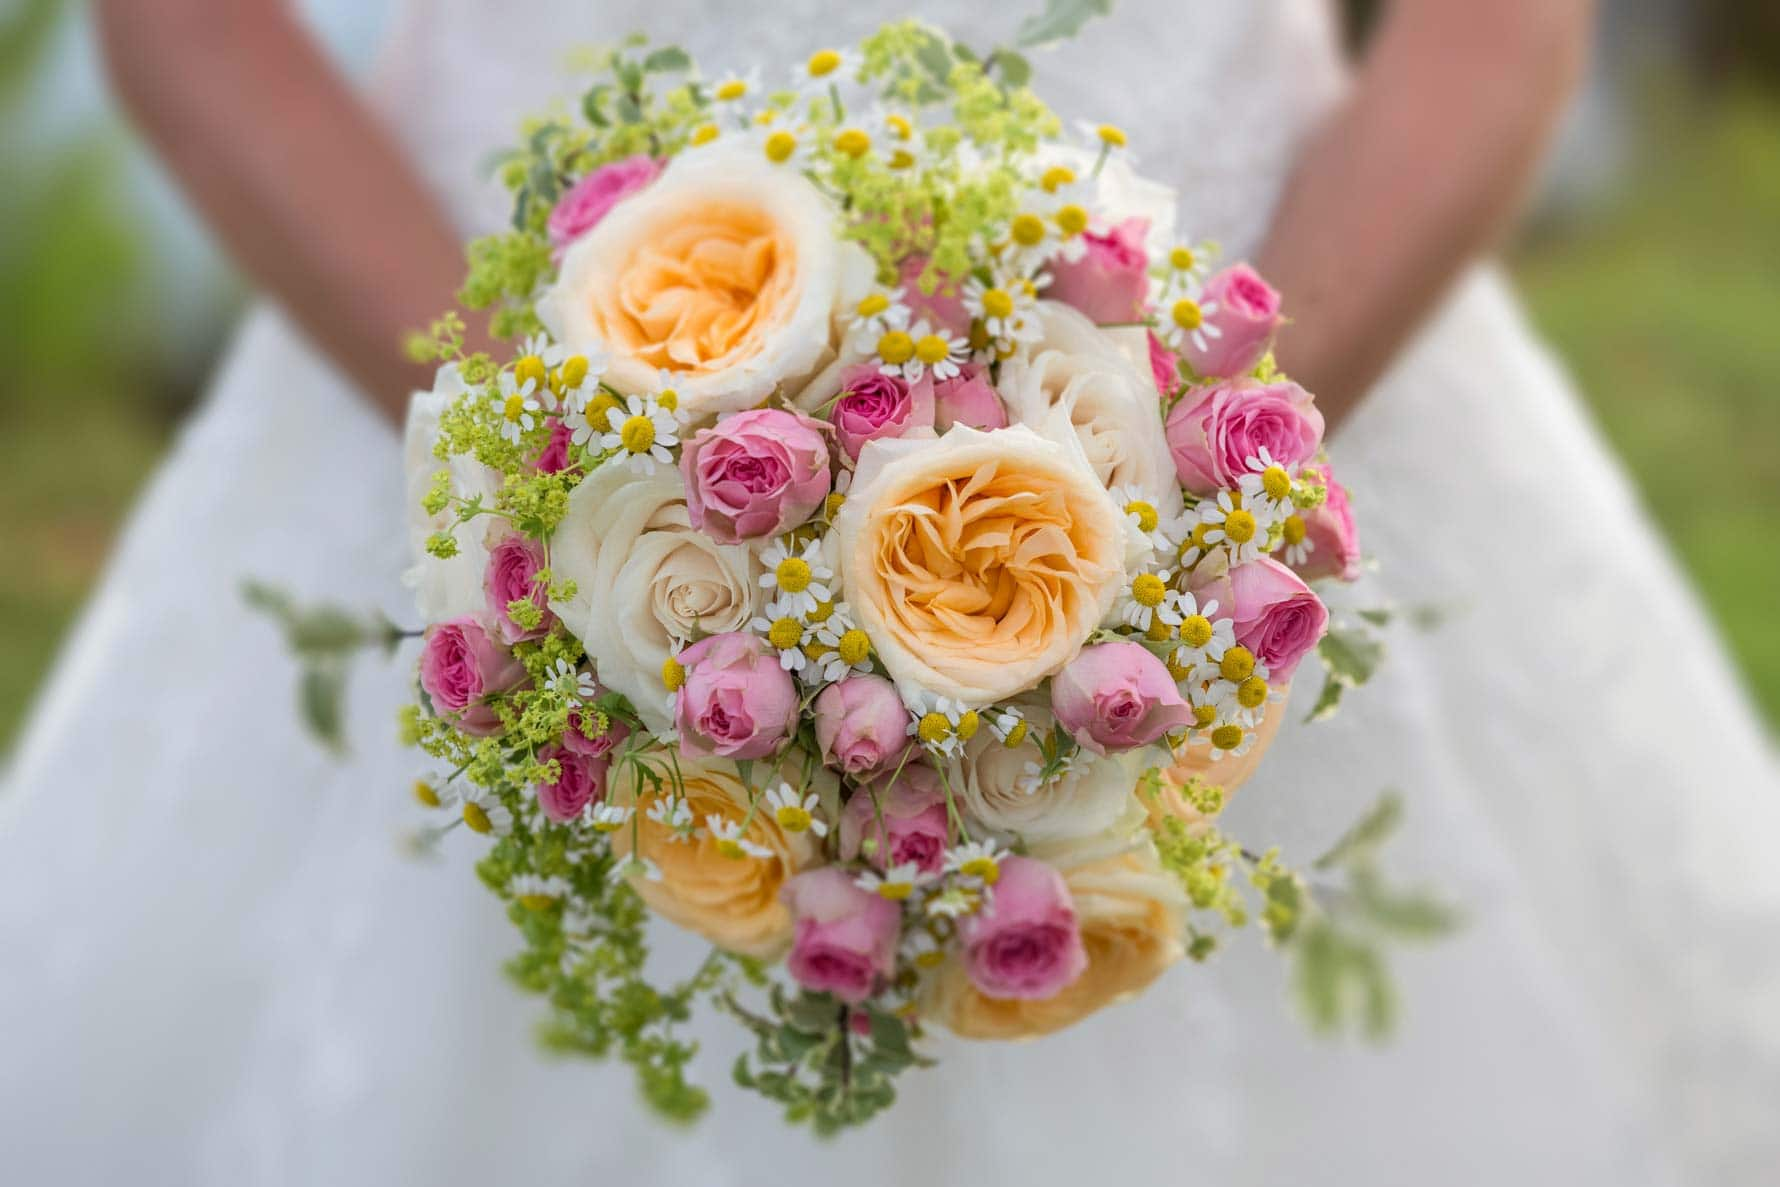 Carrie-Ann's bouquet at her Mallorca wedding in Capdepera